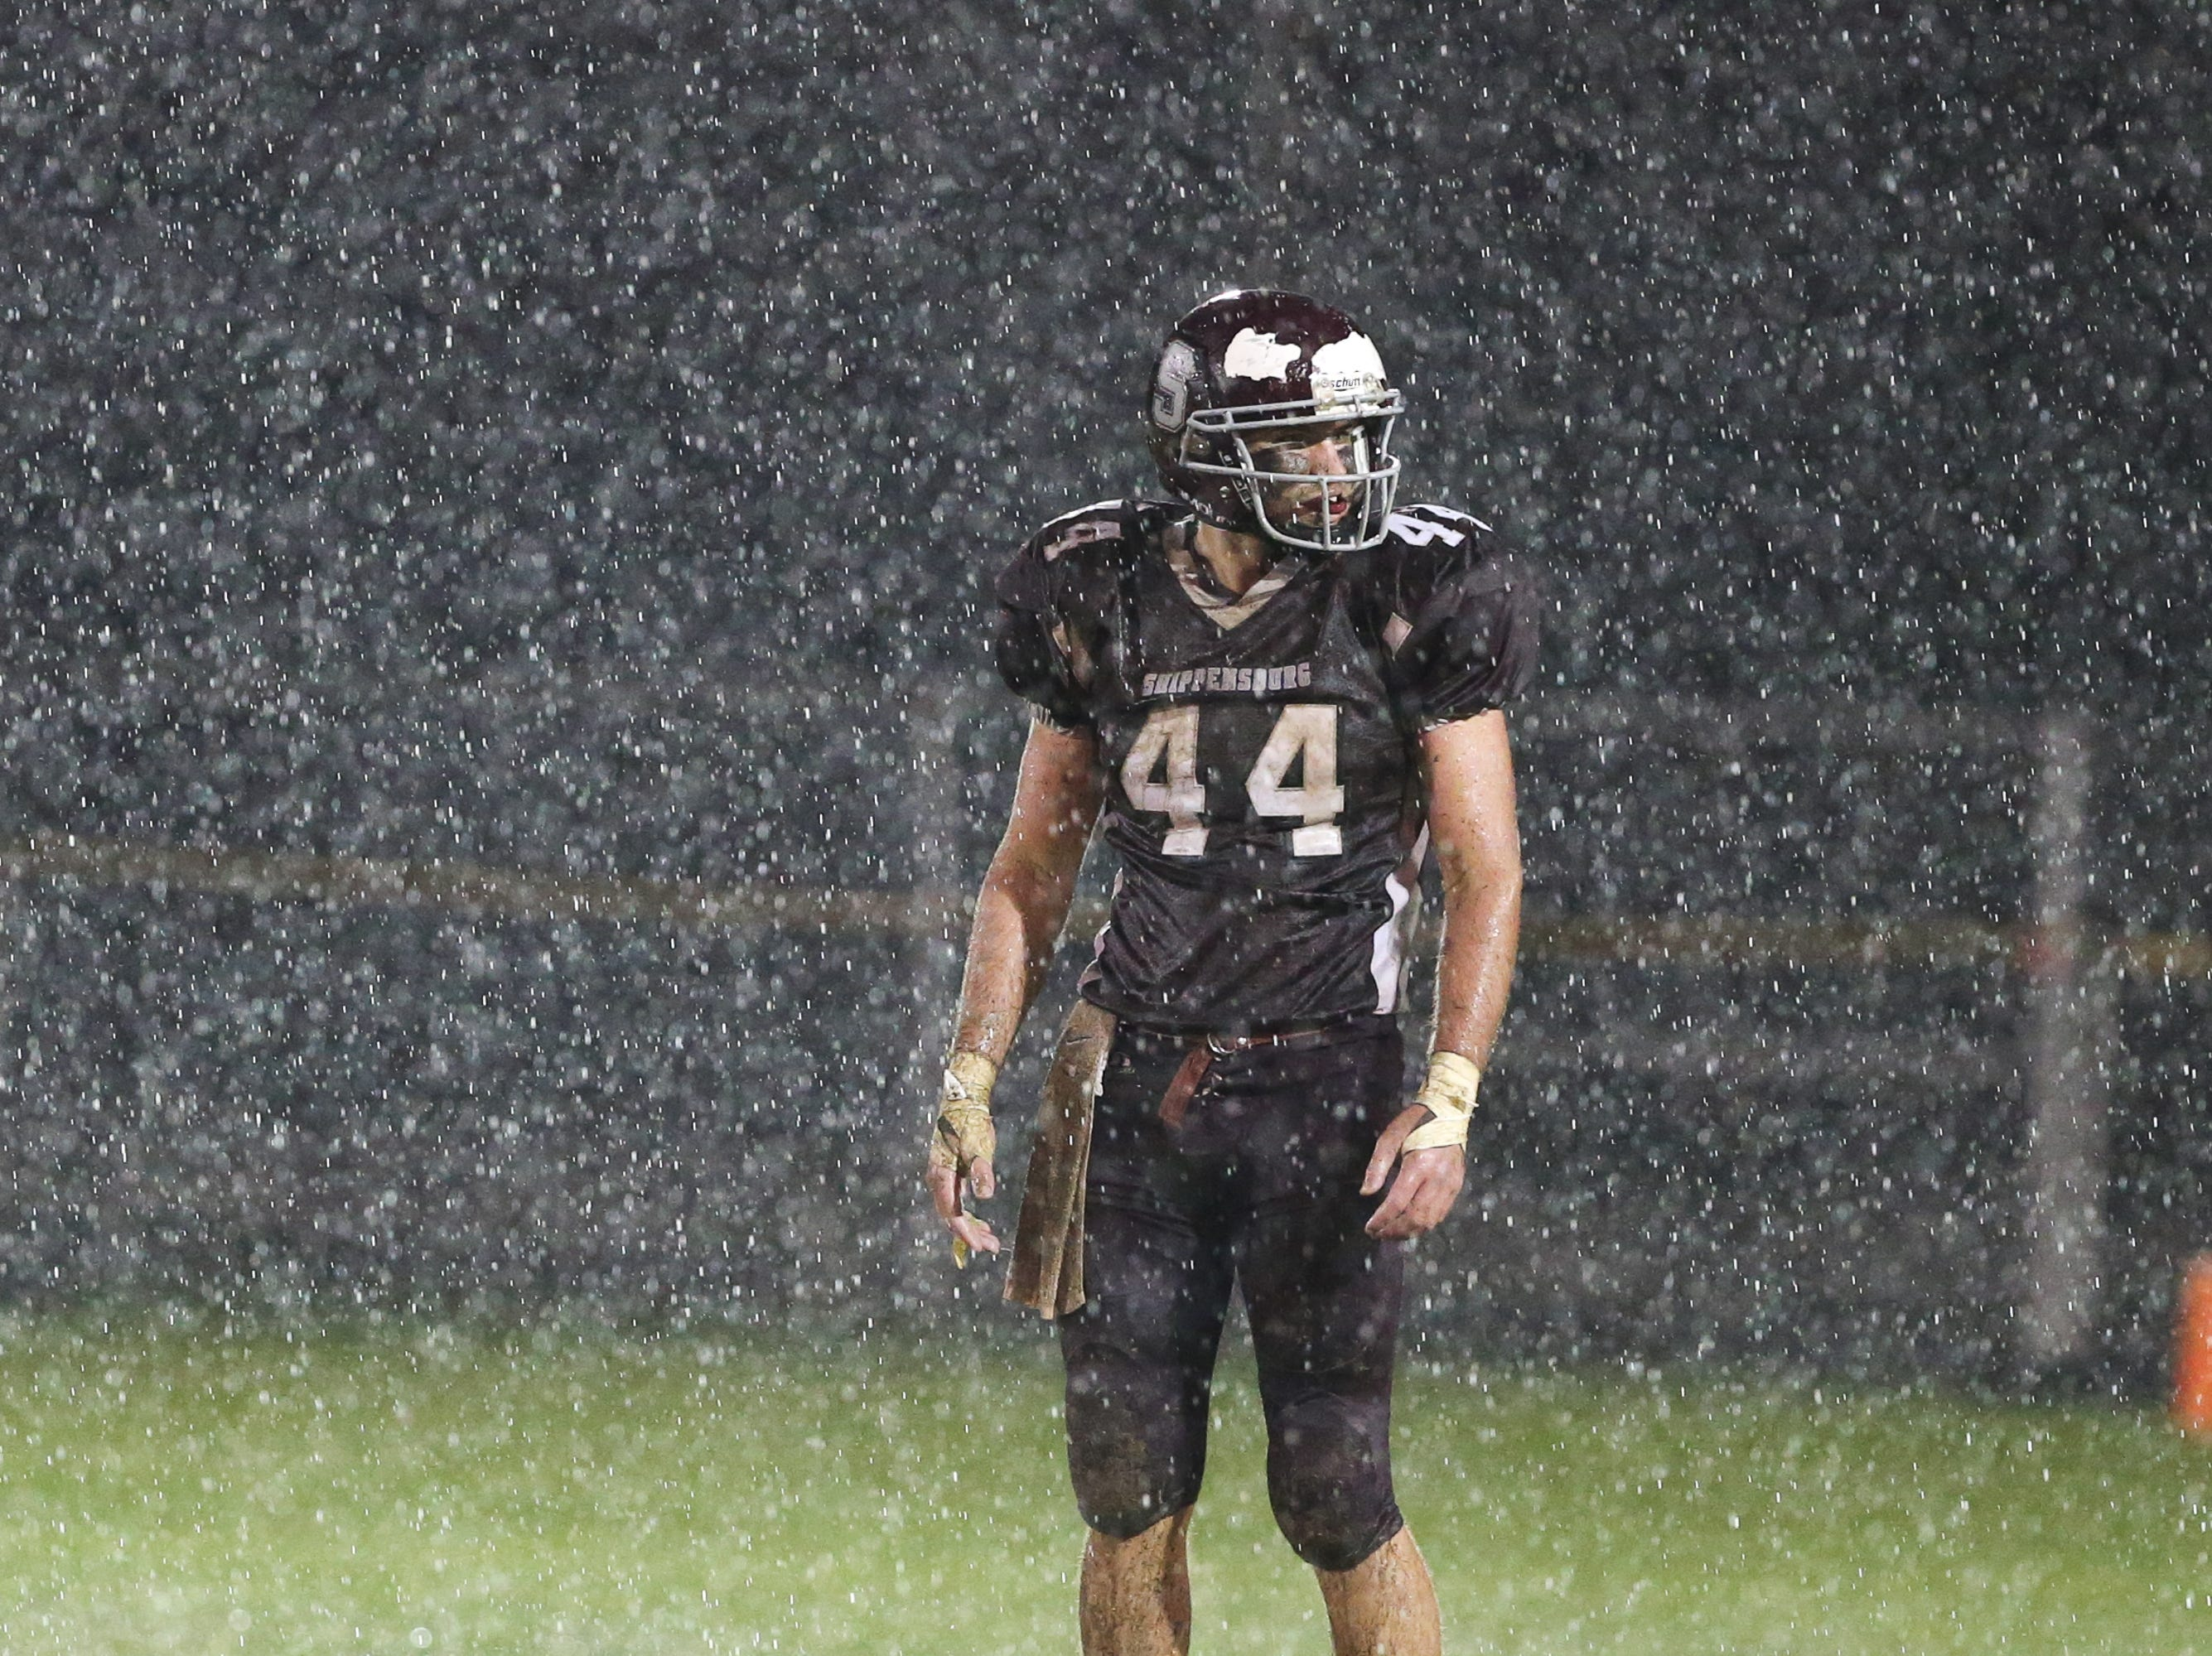 A player stands in the pouring rain. The Shippensburg Greyhounds defeated Northeastern, 6-0, in a playoff game in Shippensburg on Friday, Nov. 2, 2018.